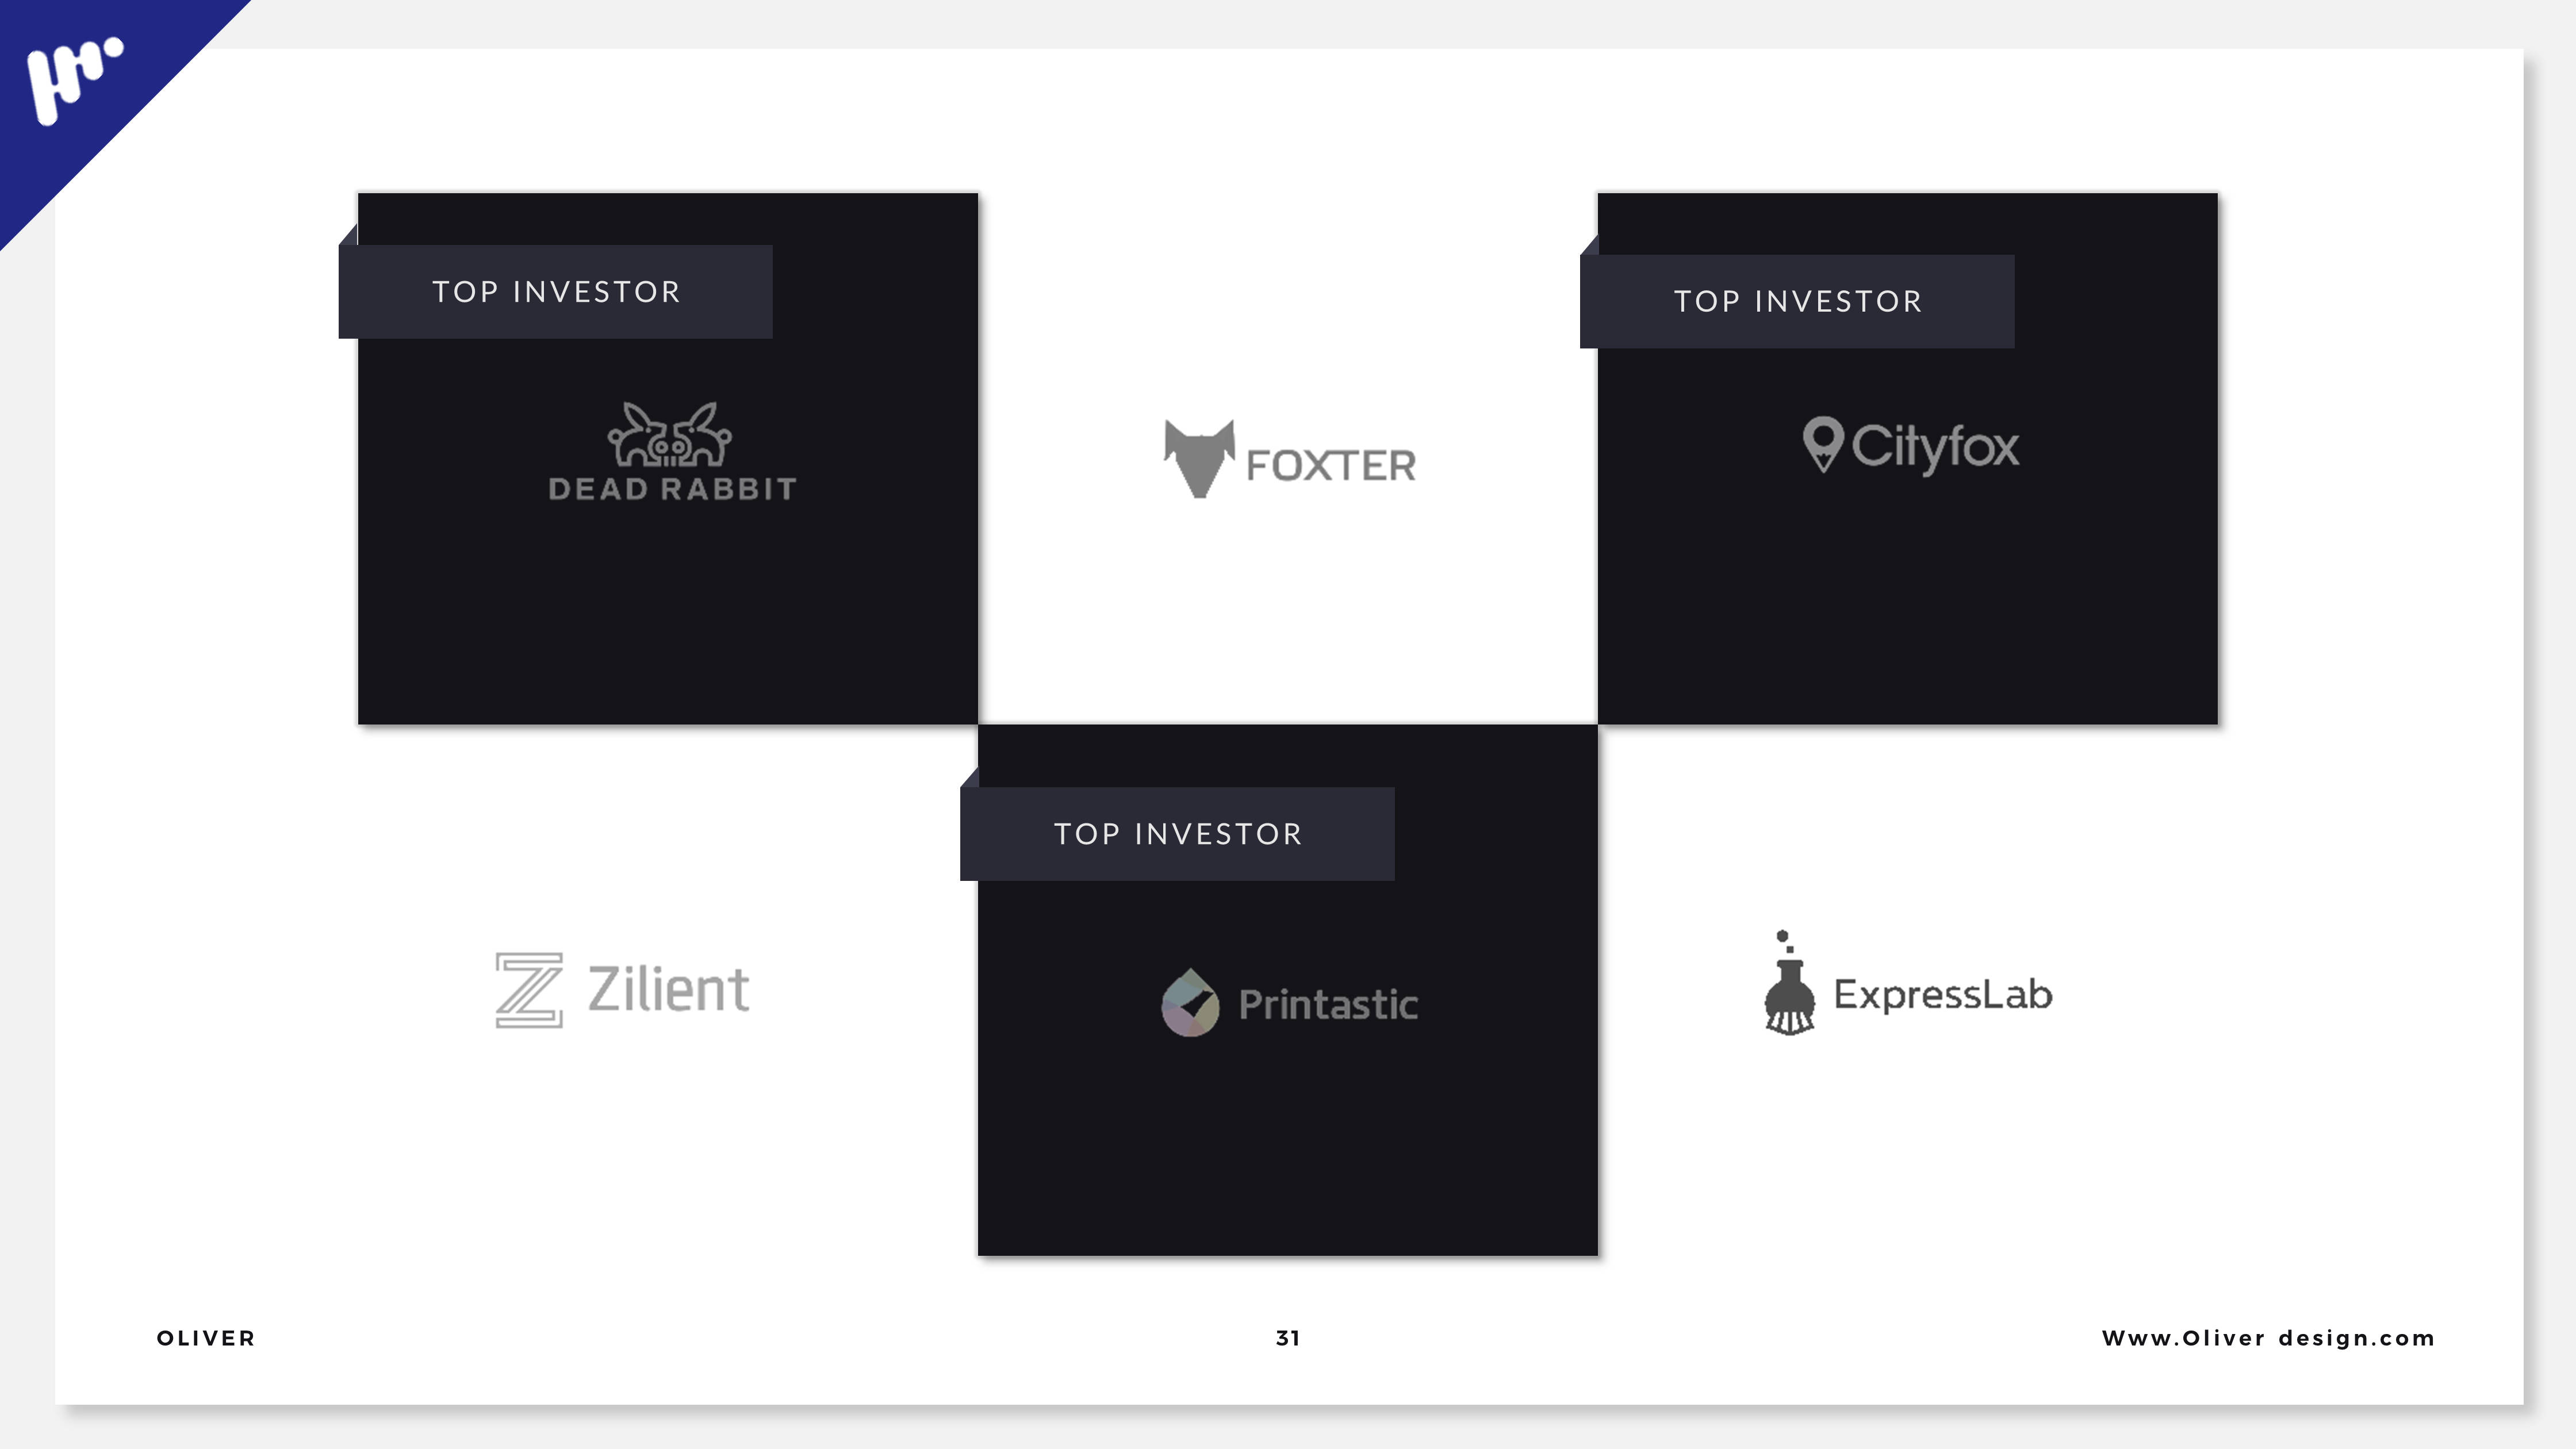 Oliver business powerpoint template by mikokit graphicriver oliver business powerpoint template reheart Image collections